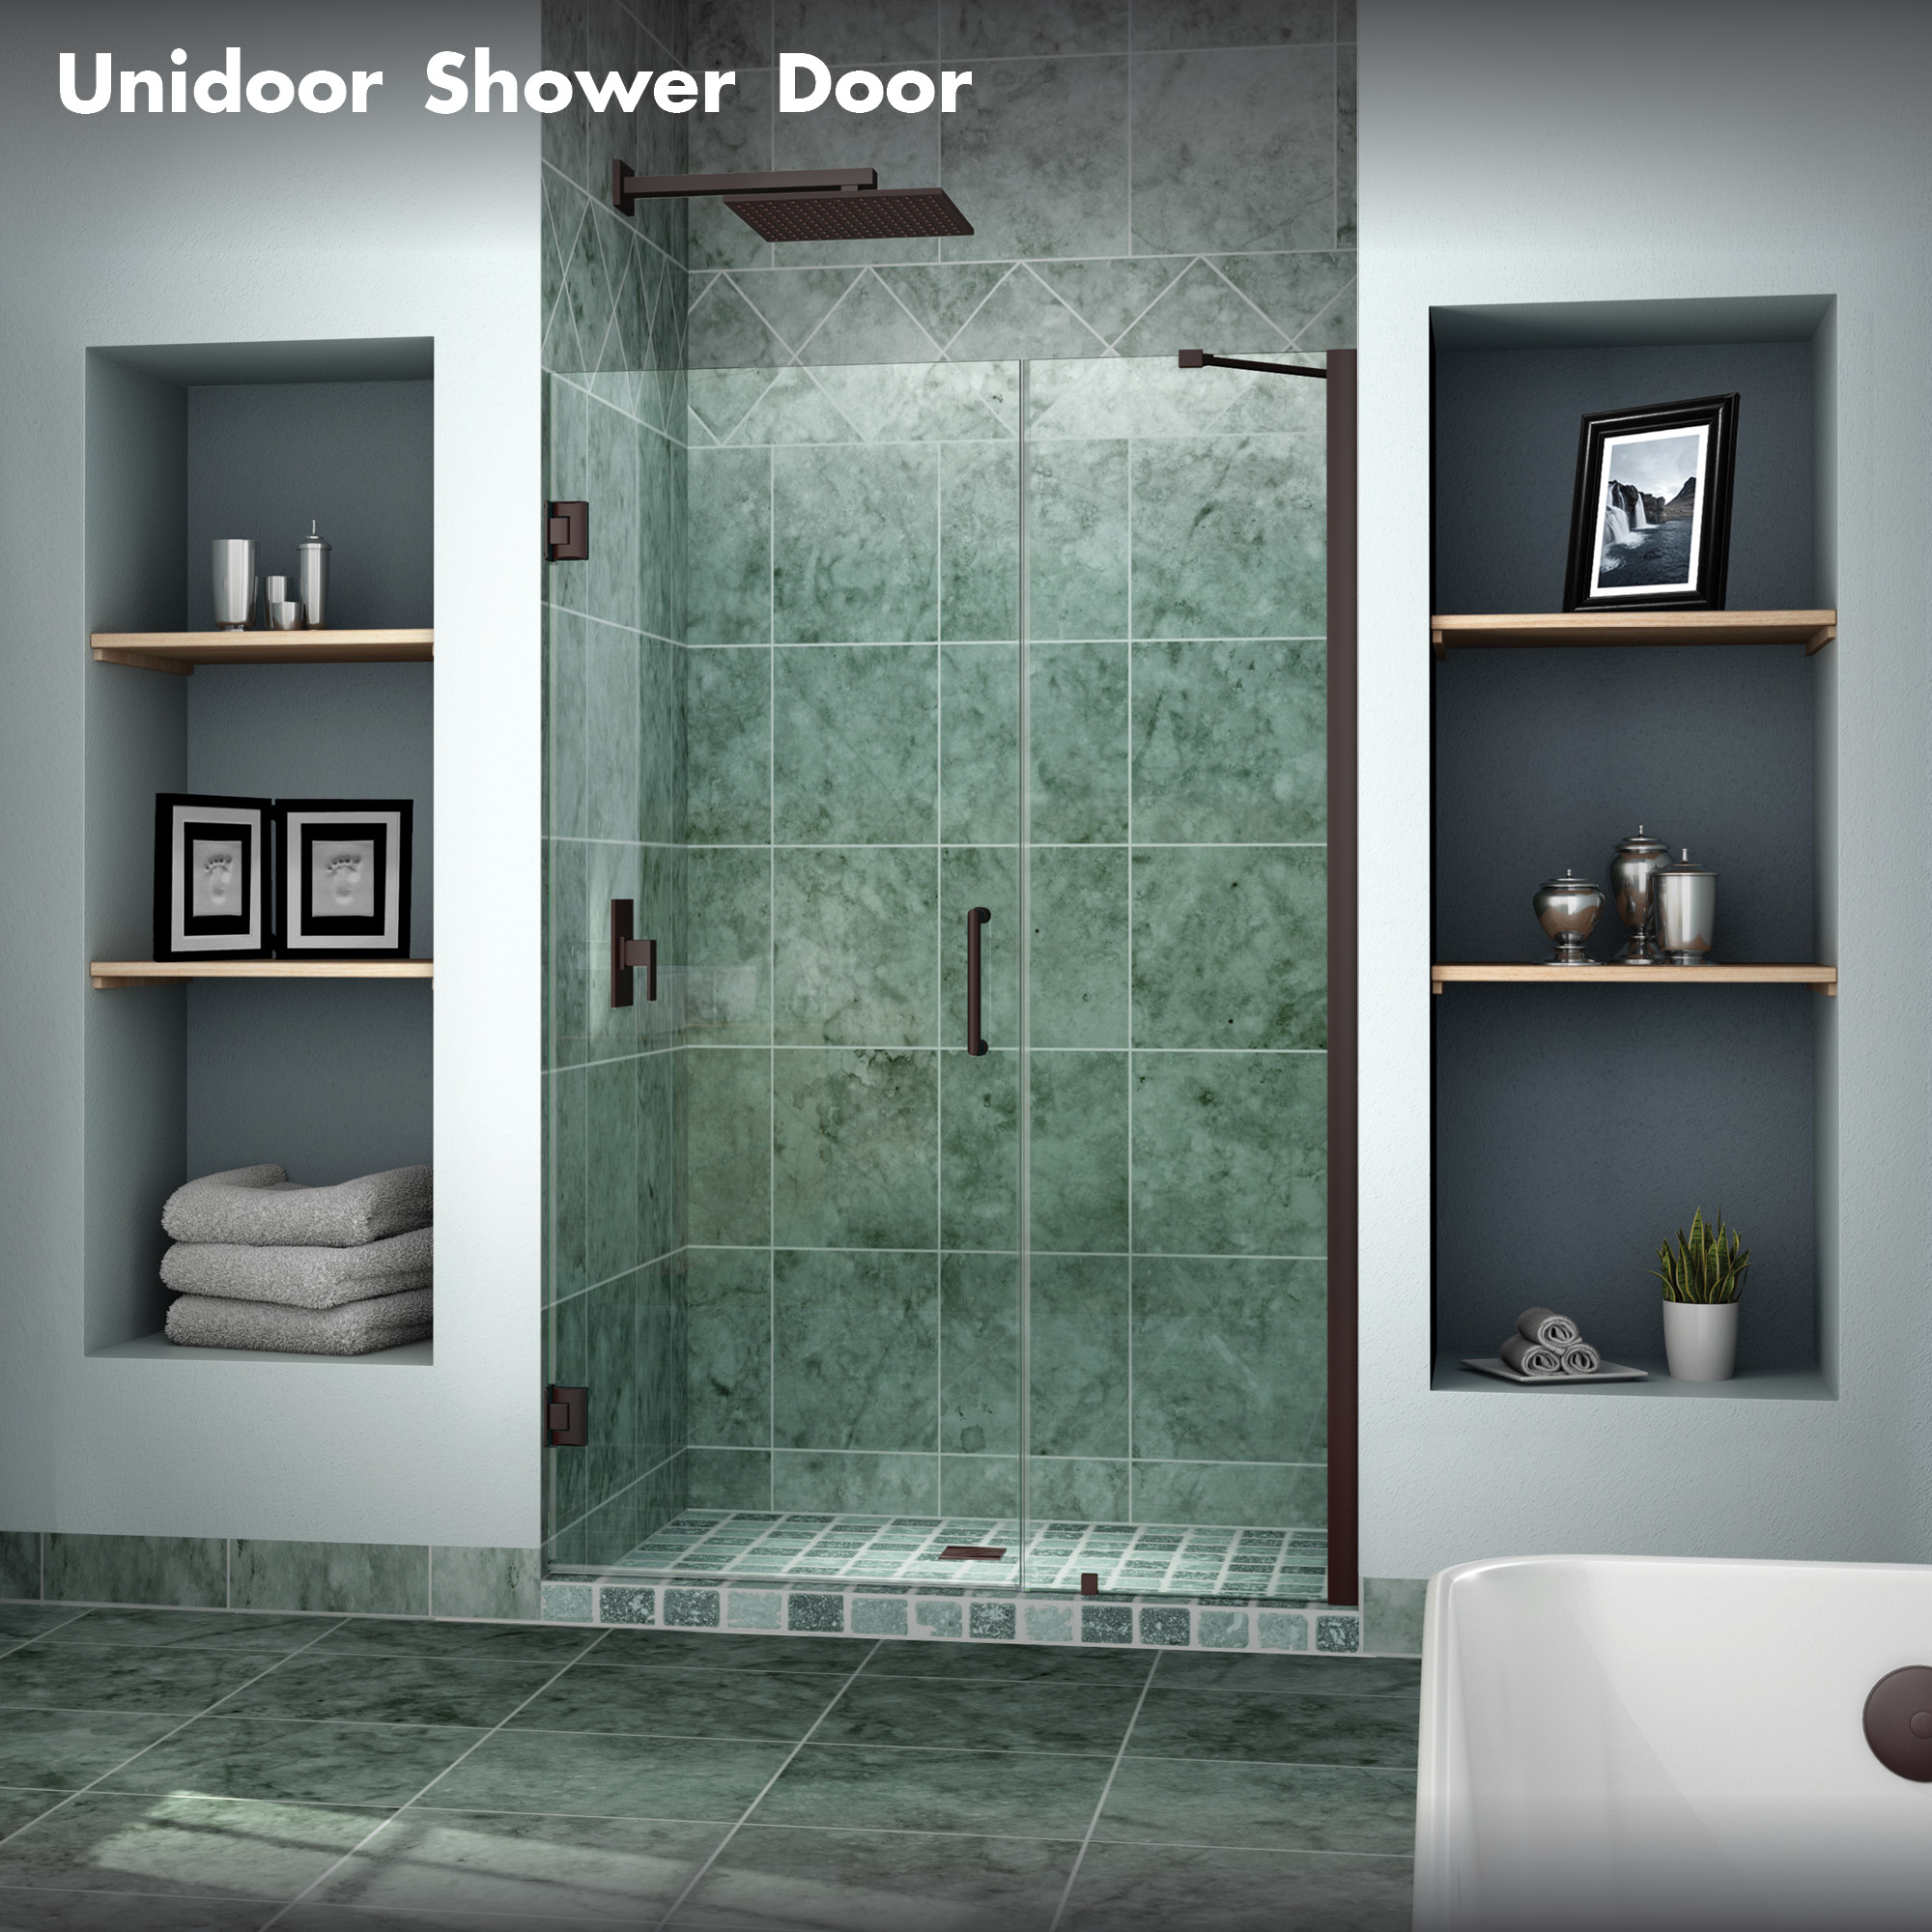 Unidoor & DreamLine showers: Unidoor Hinged Shower Door